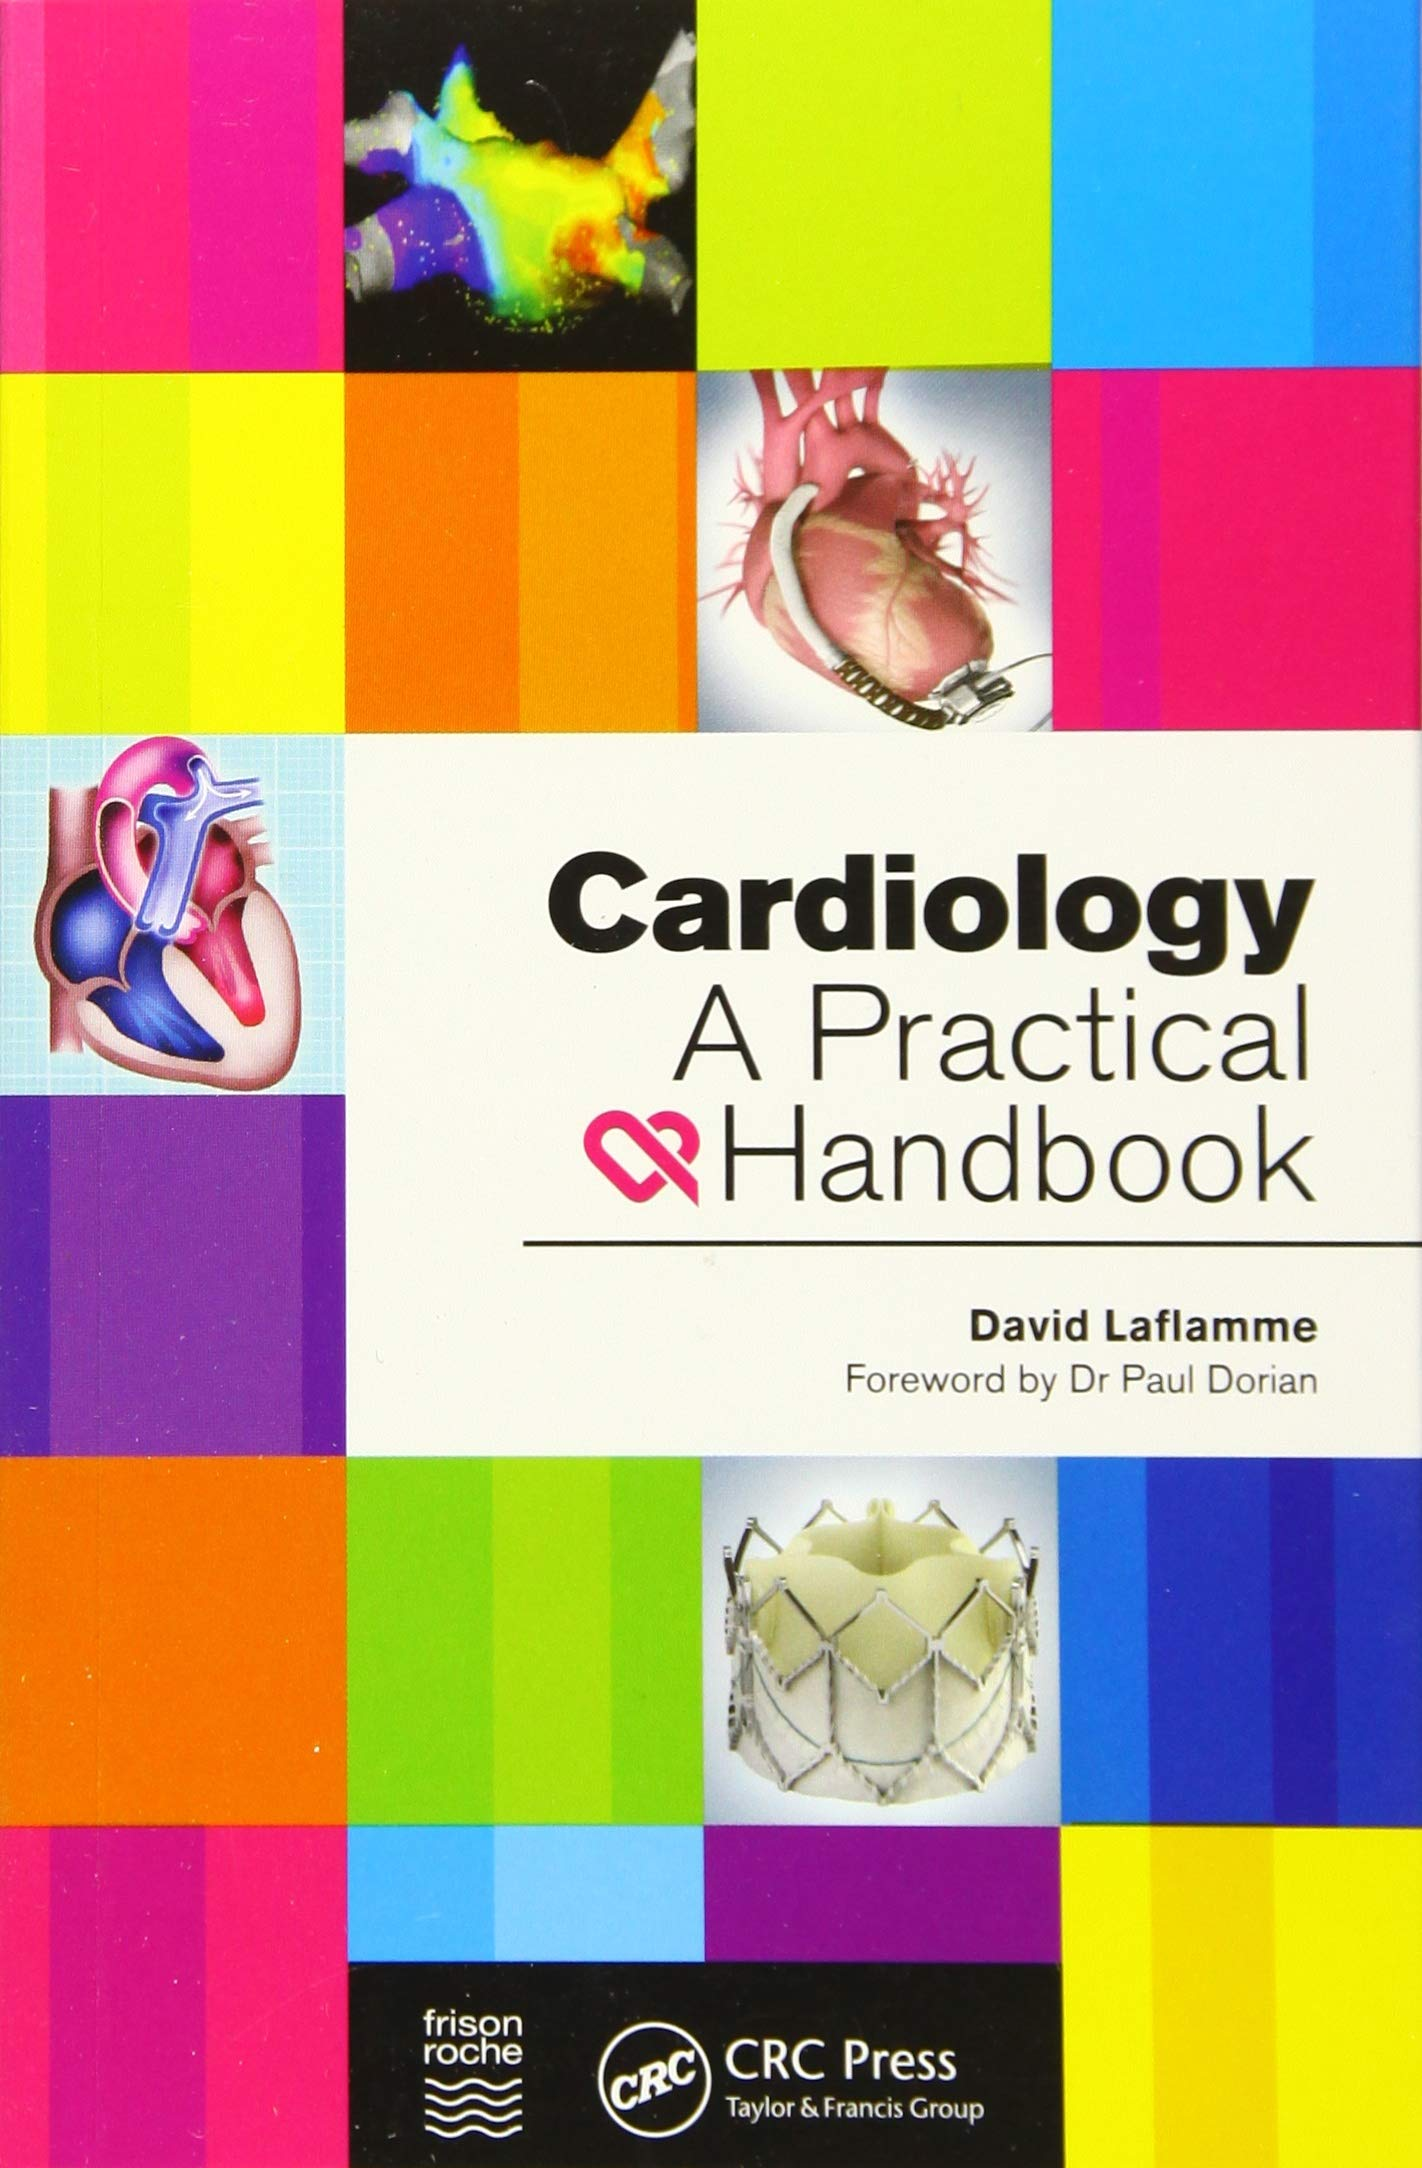 Buy Cardiology: A Practical Handbook Book Online at Low